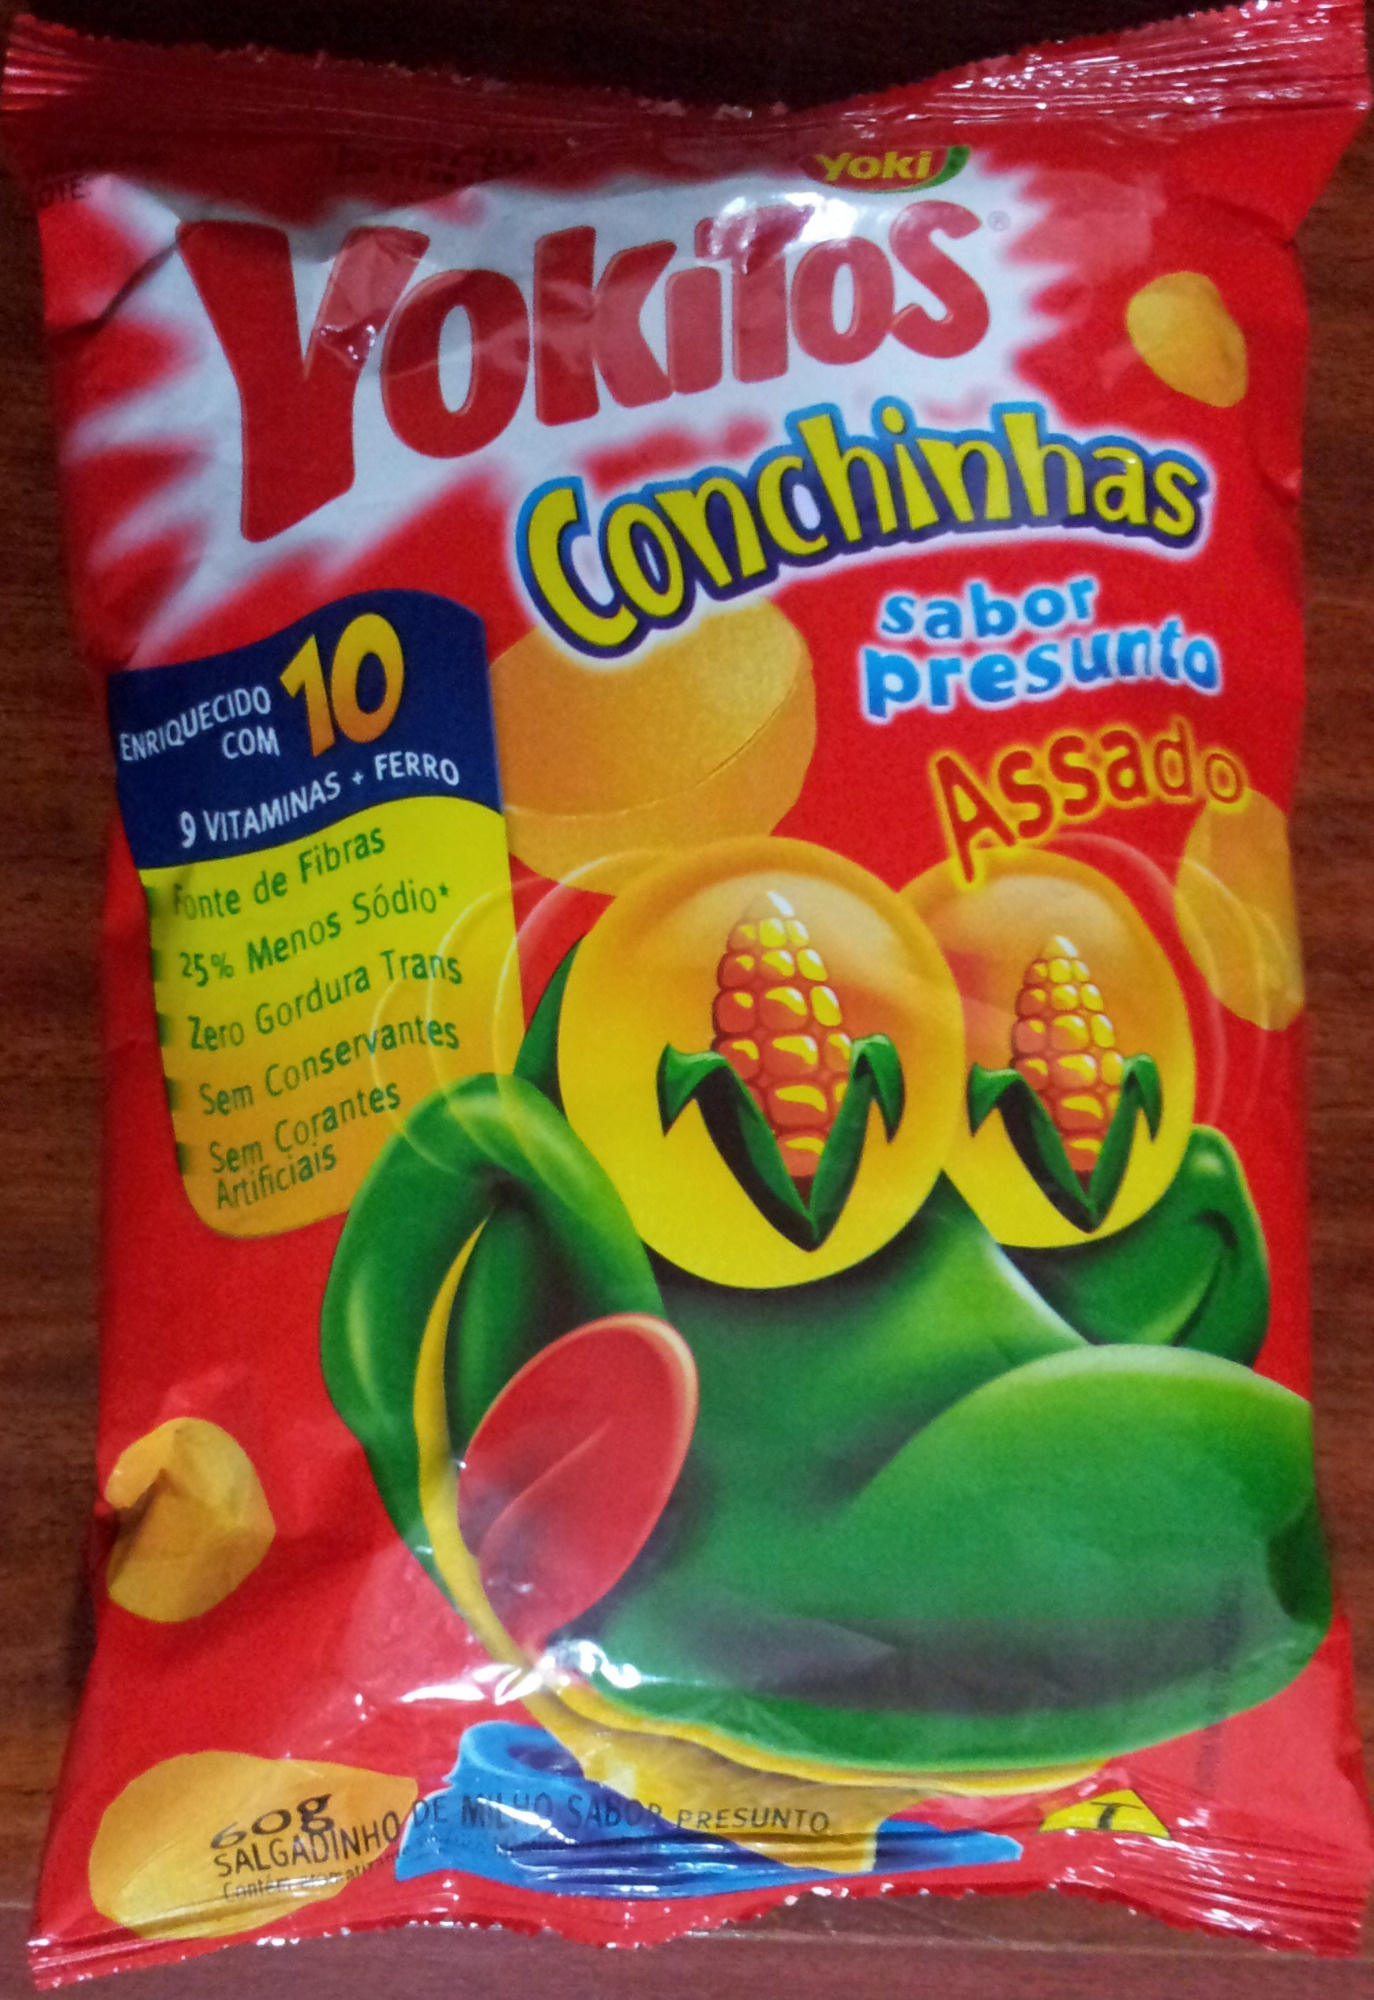 Yokitos Conchinhas Sabor Presunto - Product